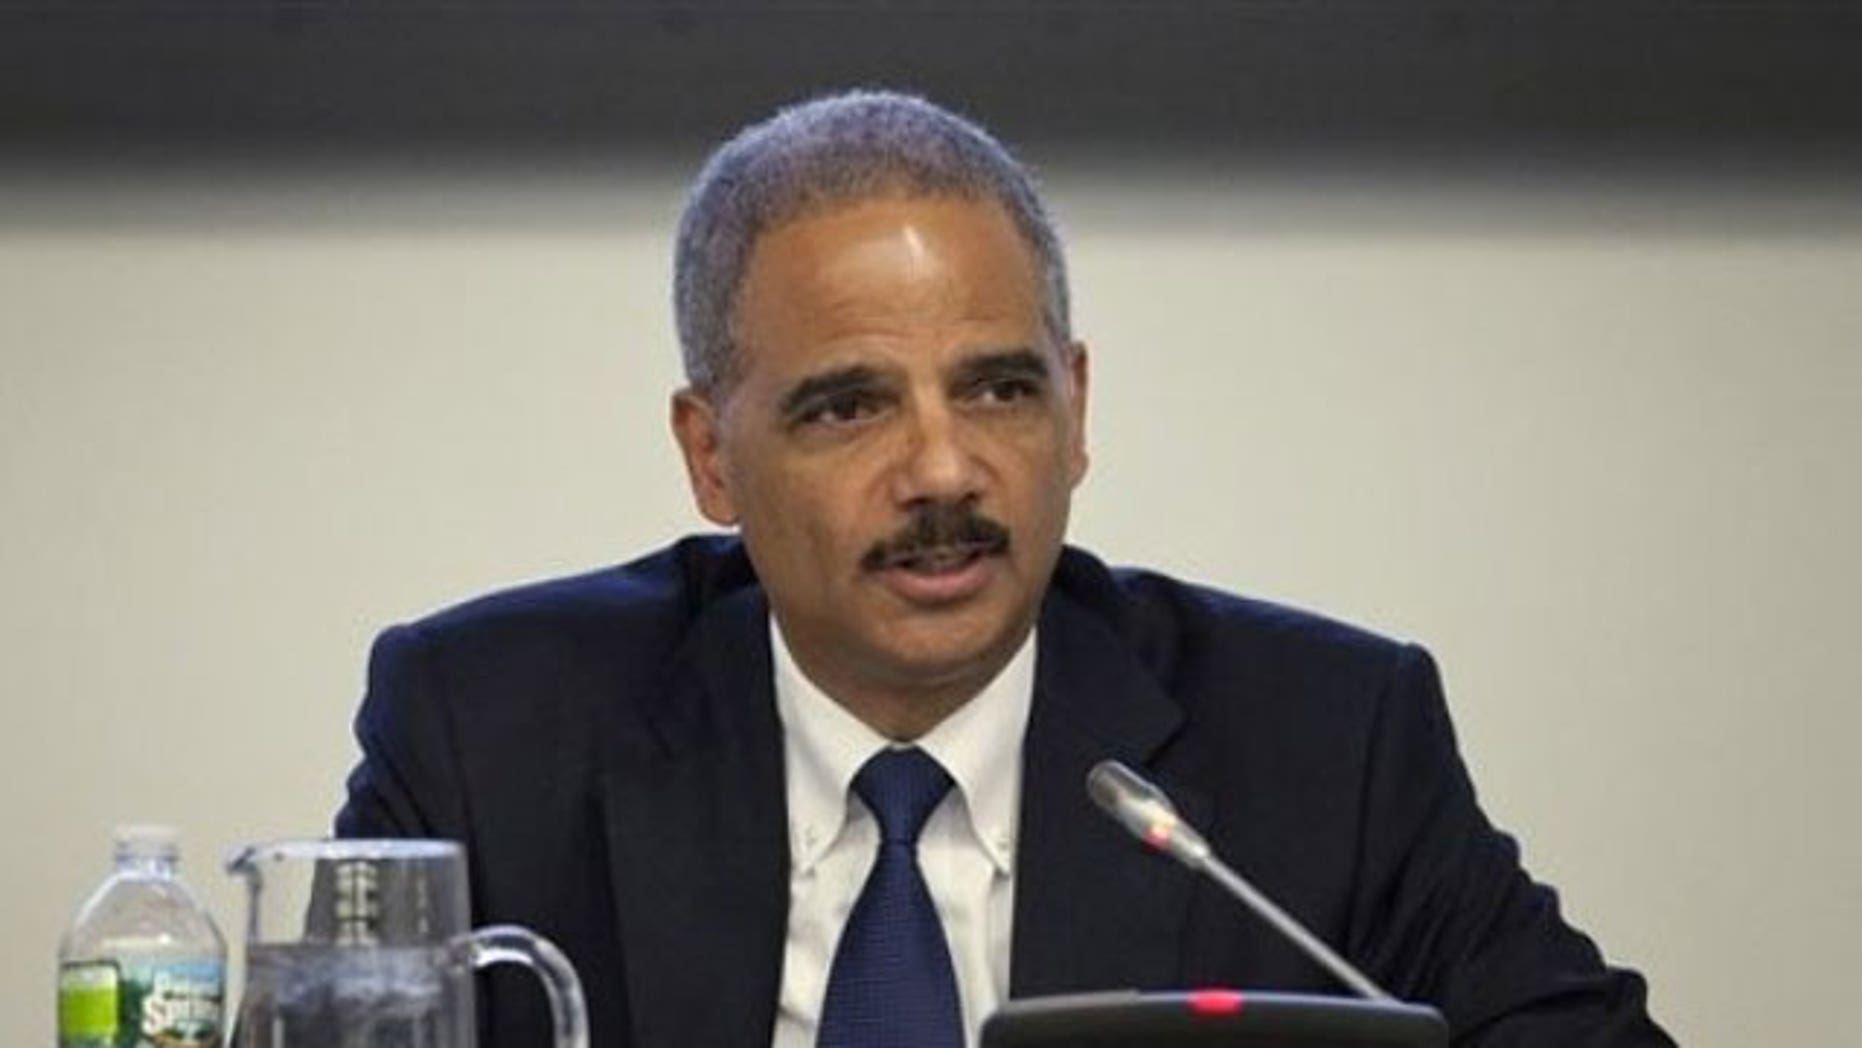 Congressional investigators probing the failed anti-gunrunning operation Fast and Furious are sending a new subpoena to Attorney General Eric Holder.